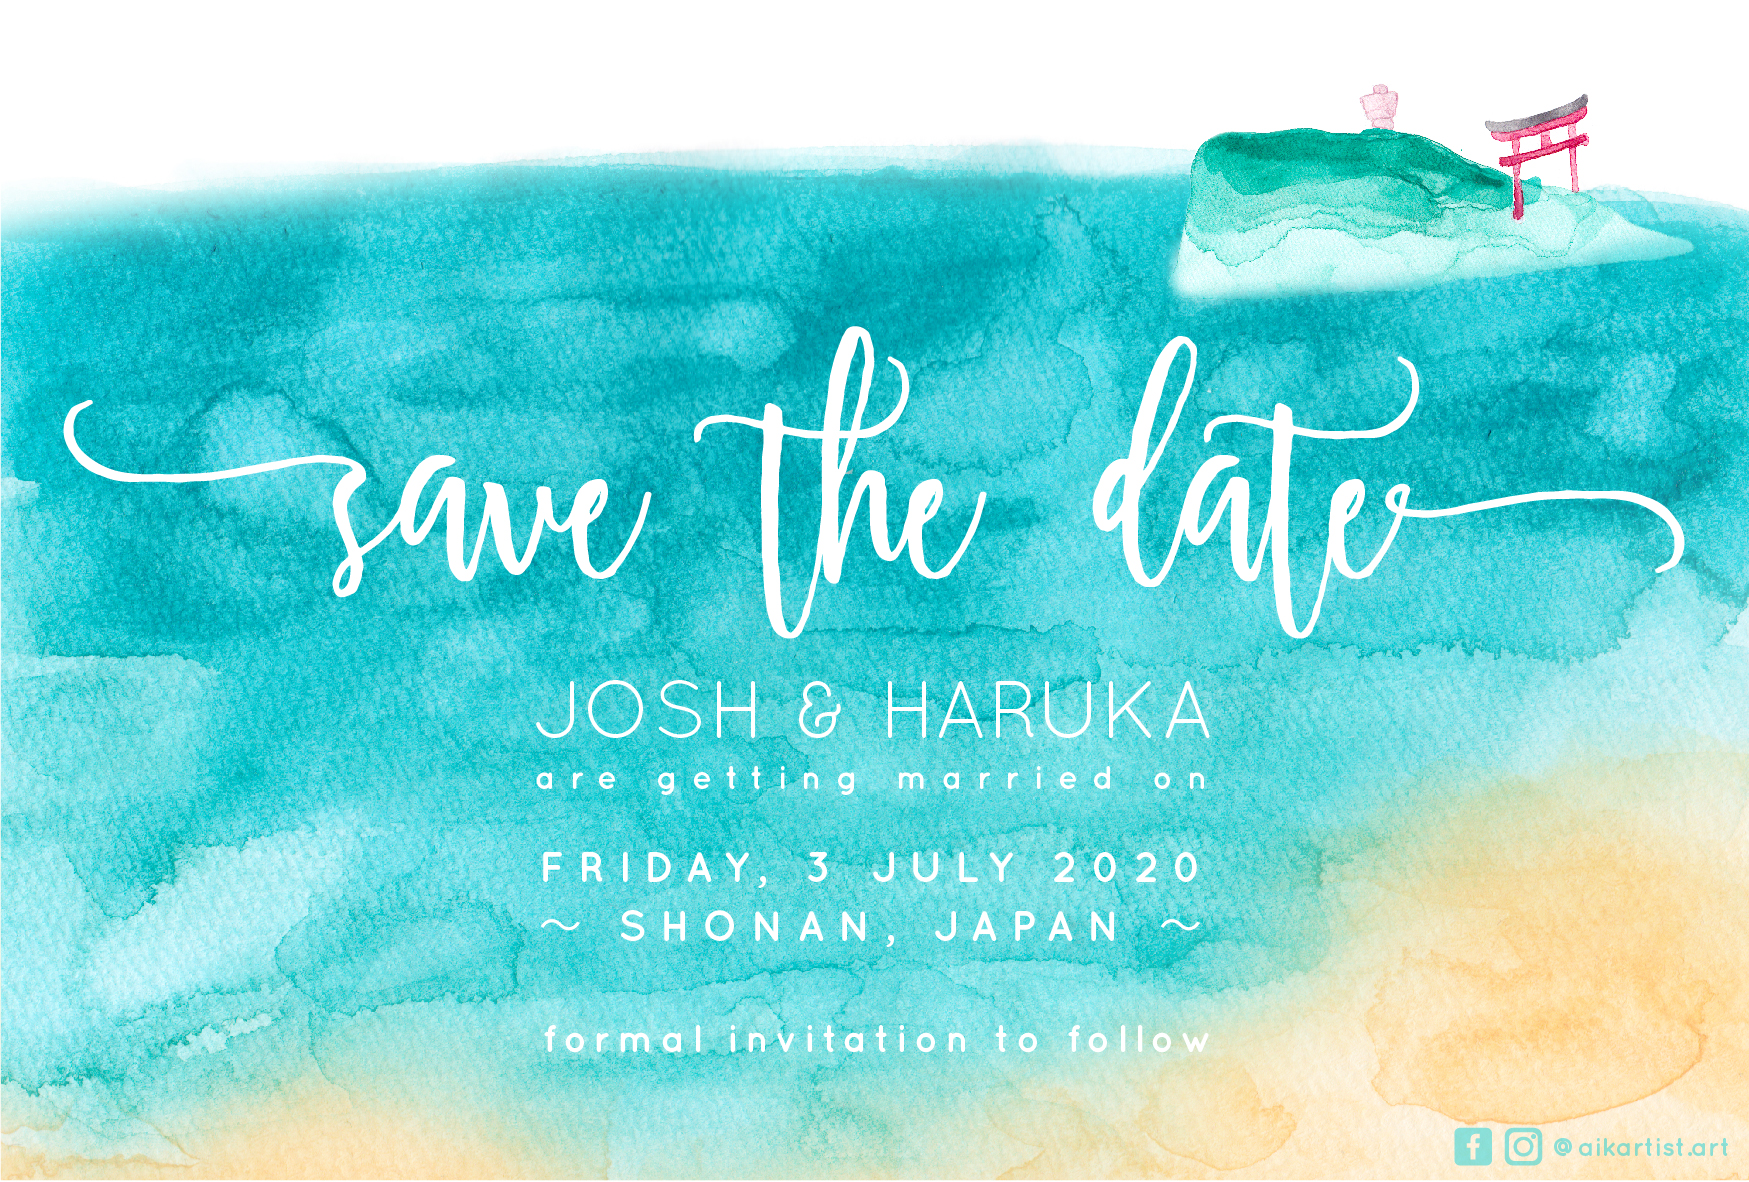 Enoshima Save The Date Card